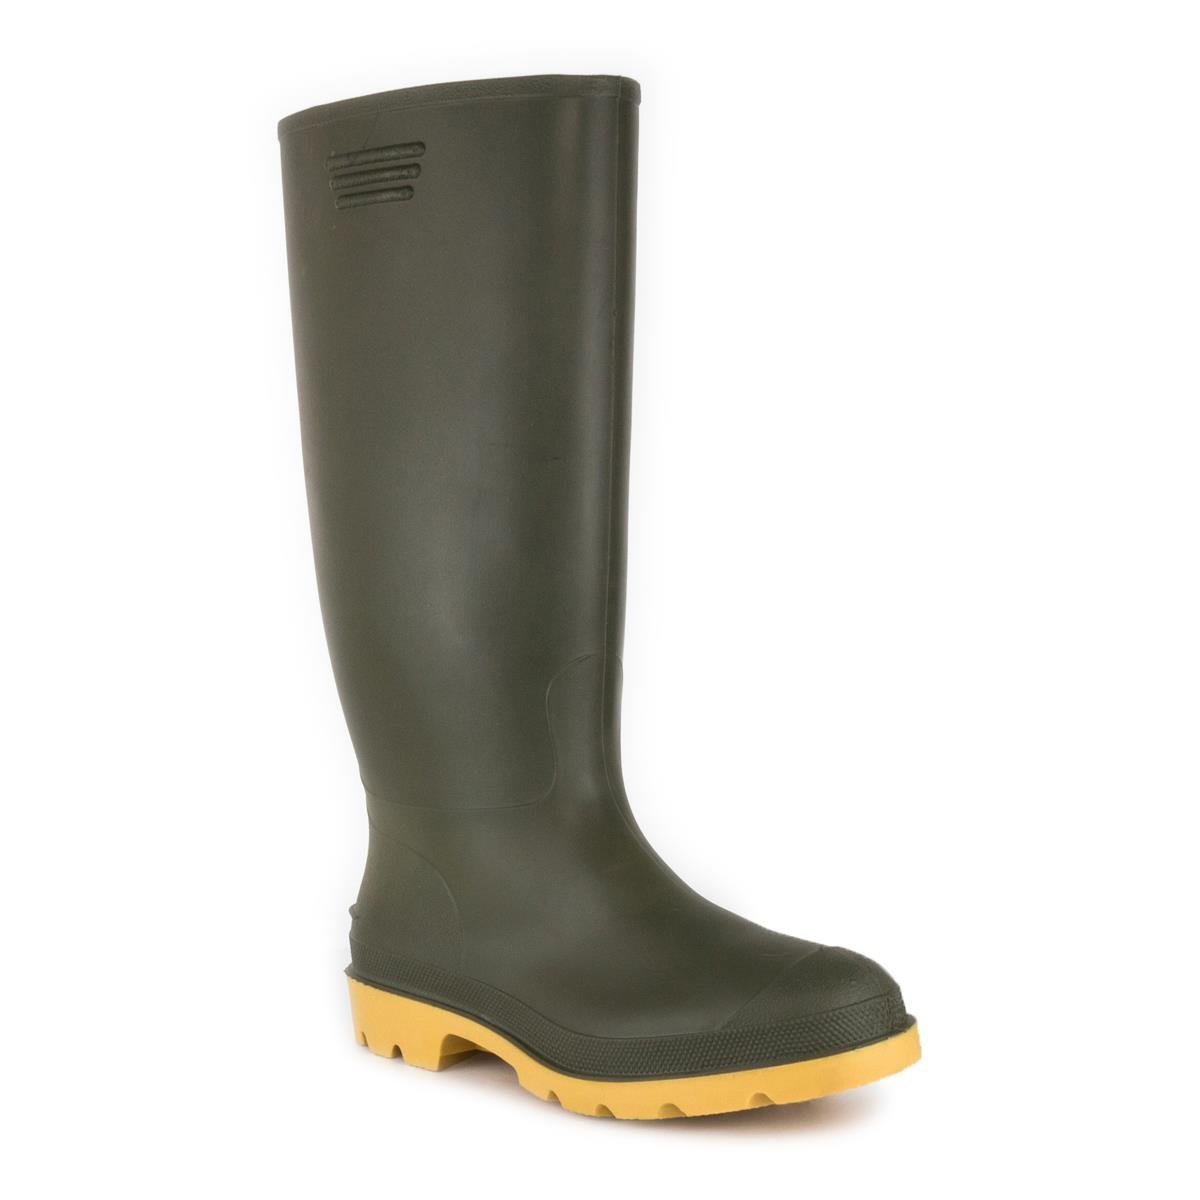 Zone Hearts Wellington Boot in Green - Adult Sizes 7-12 - Size 9 UK/10 US - Green by Zone Hearts